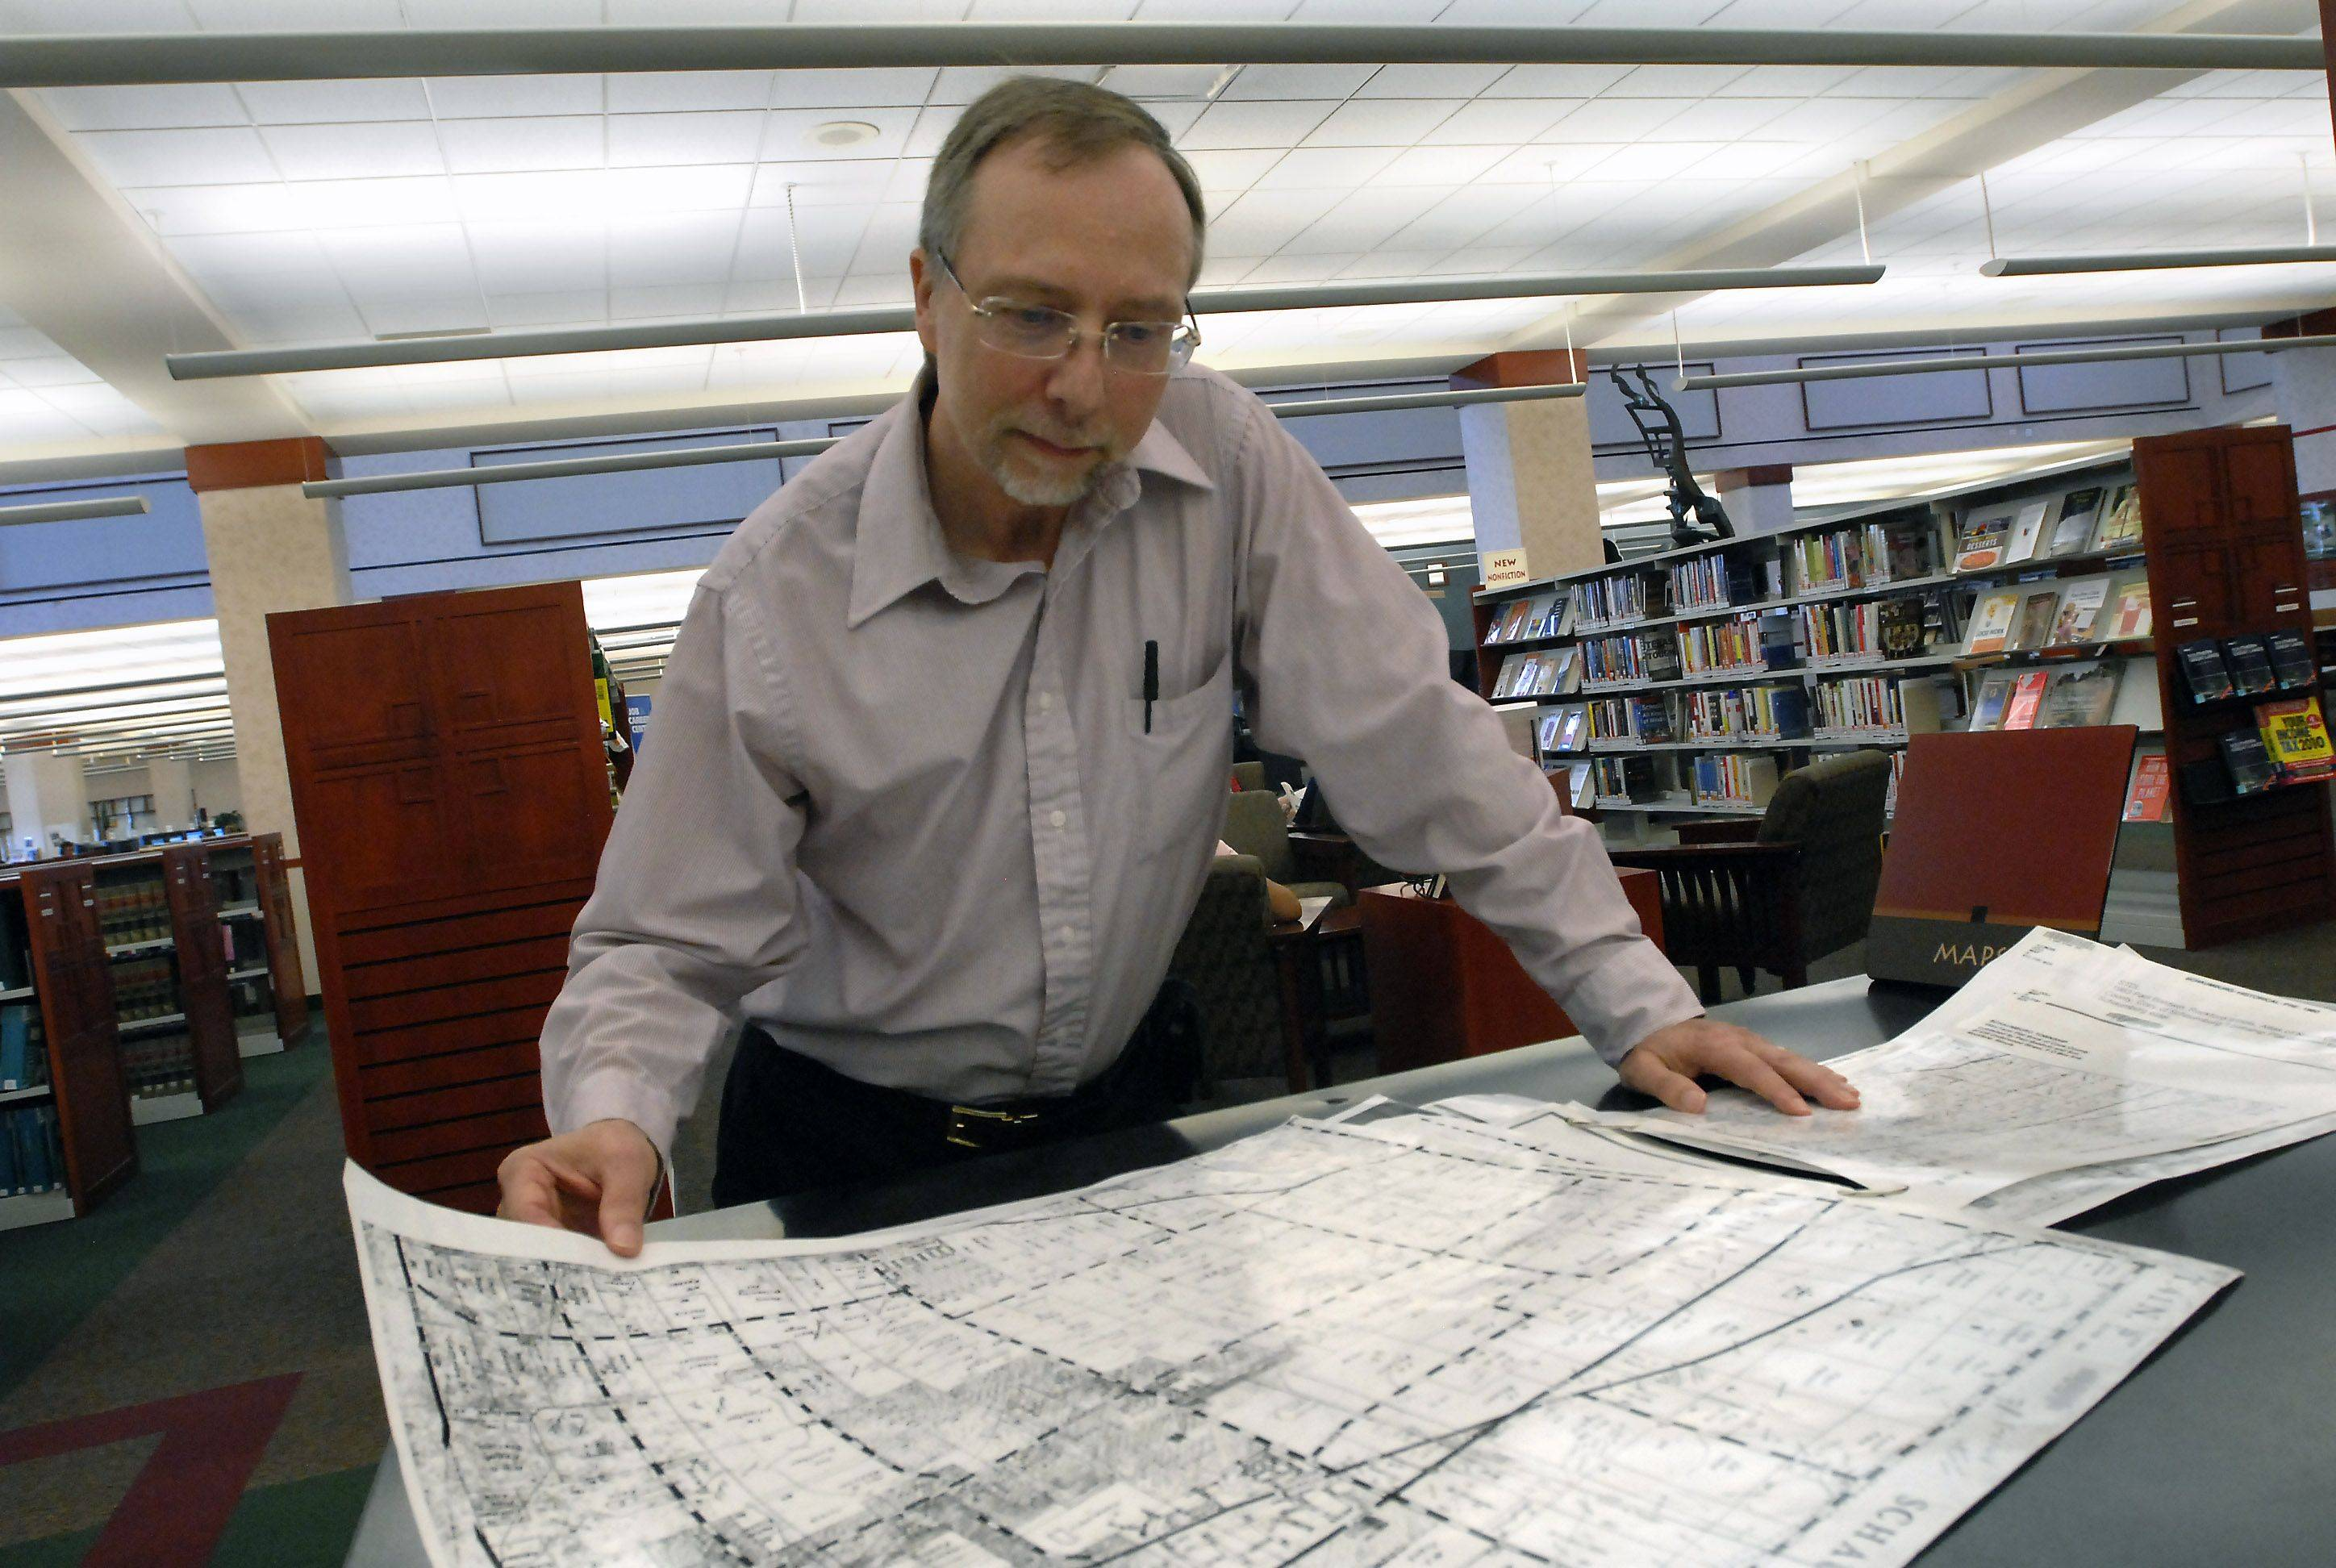 Schaumburg Township Library genealogy coordinator Tony Kierna looks over some county maps at the library.